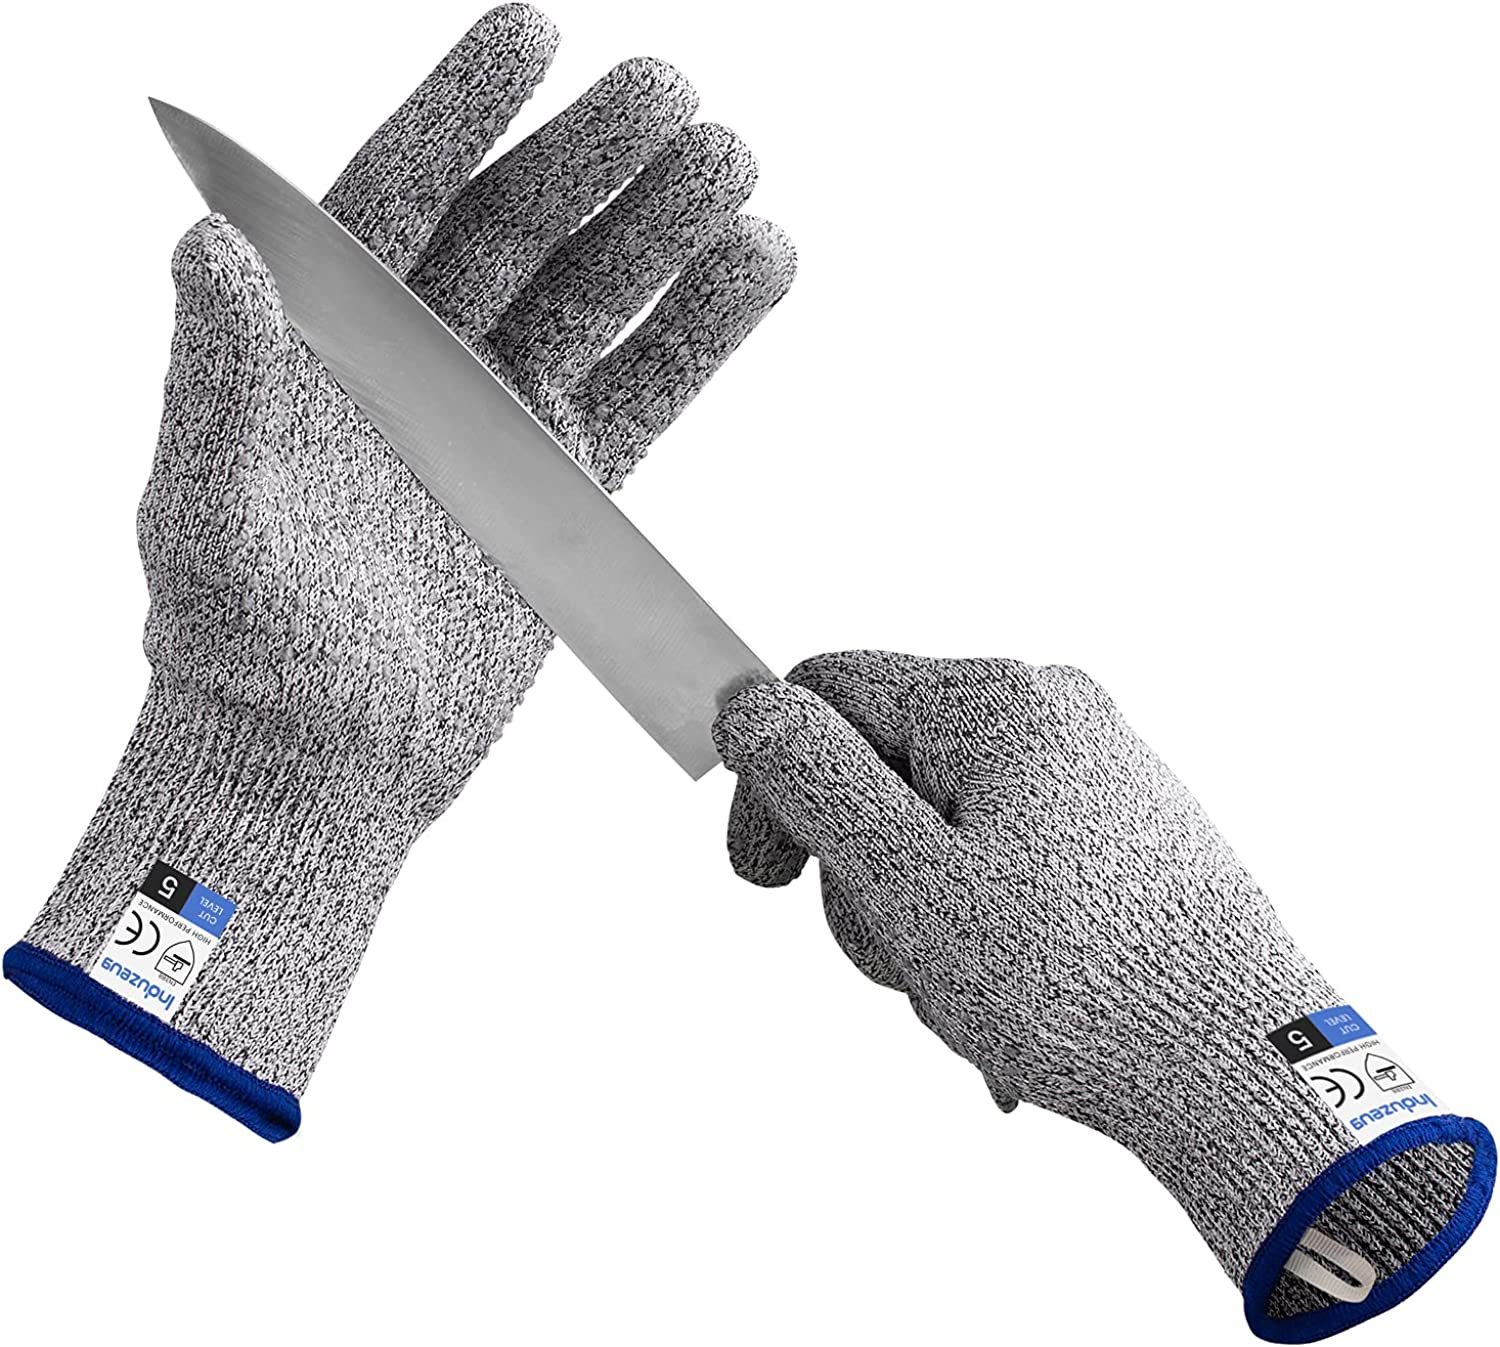 Induzeug Cut Resistant Gloves with Dots Non-slip G Food Indianapolis Mall 5 popular Silicone